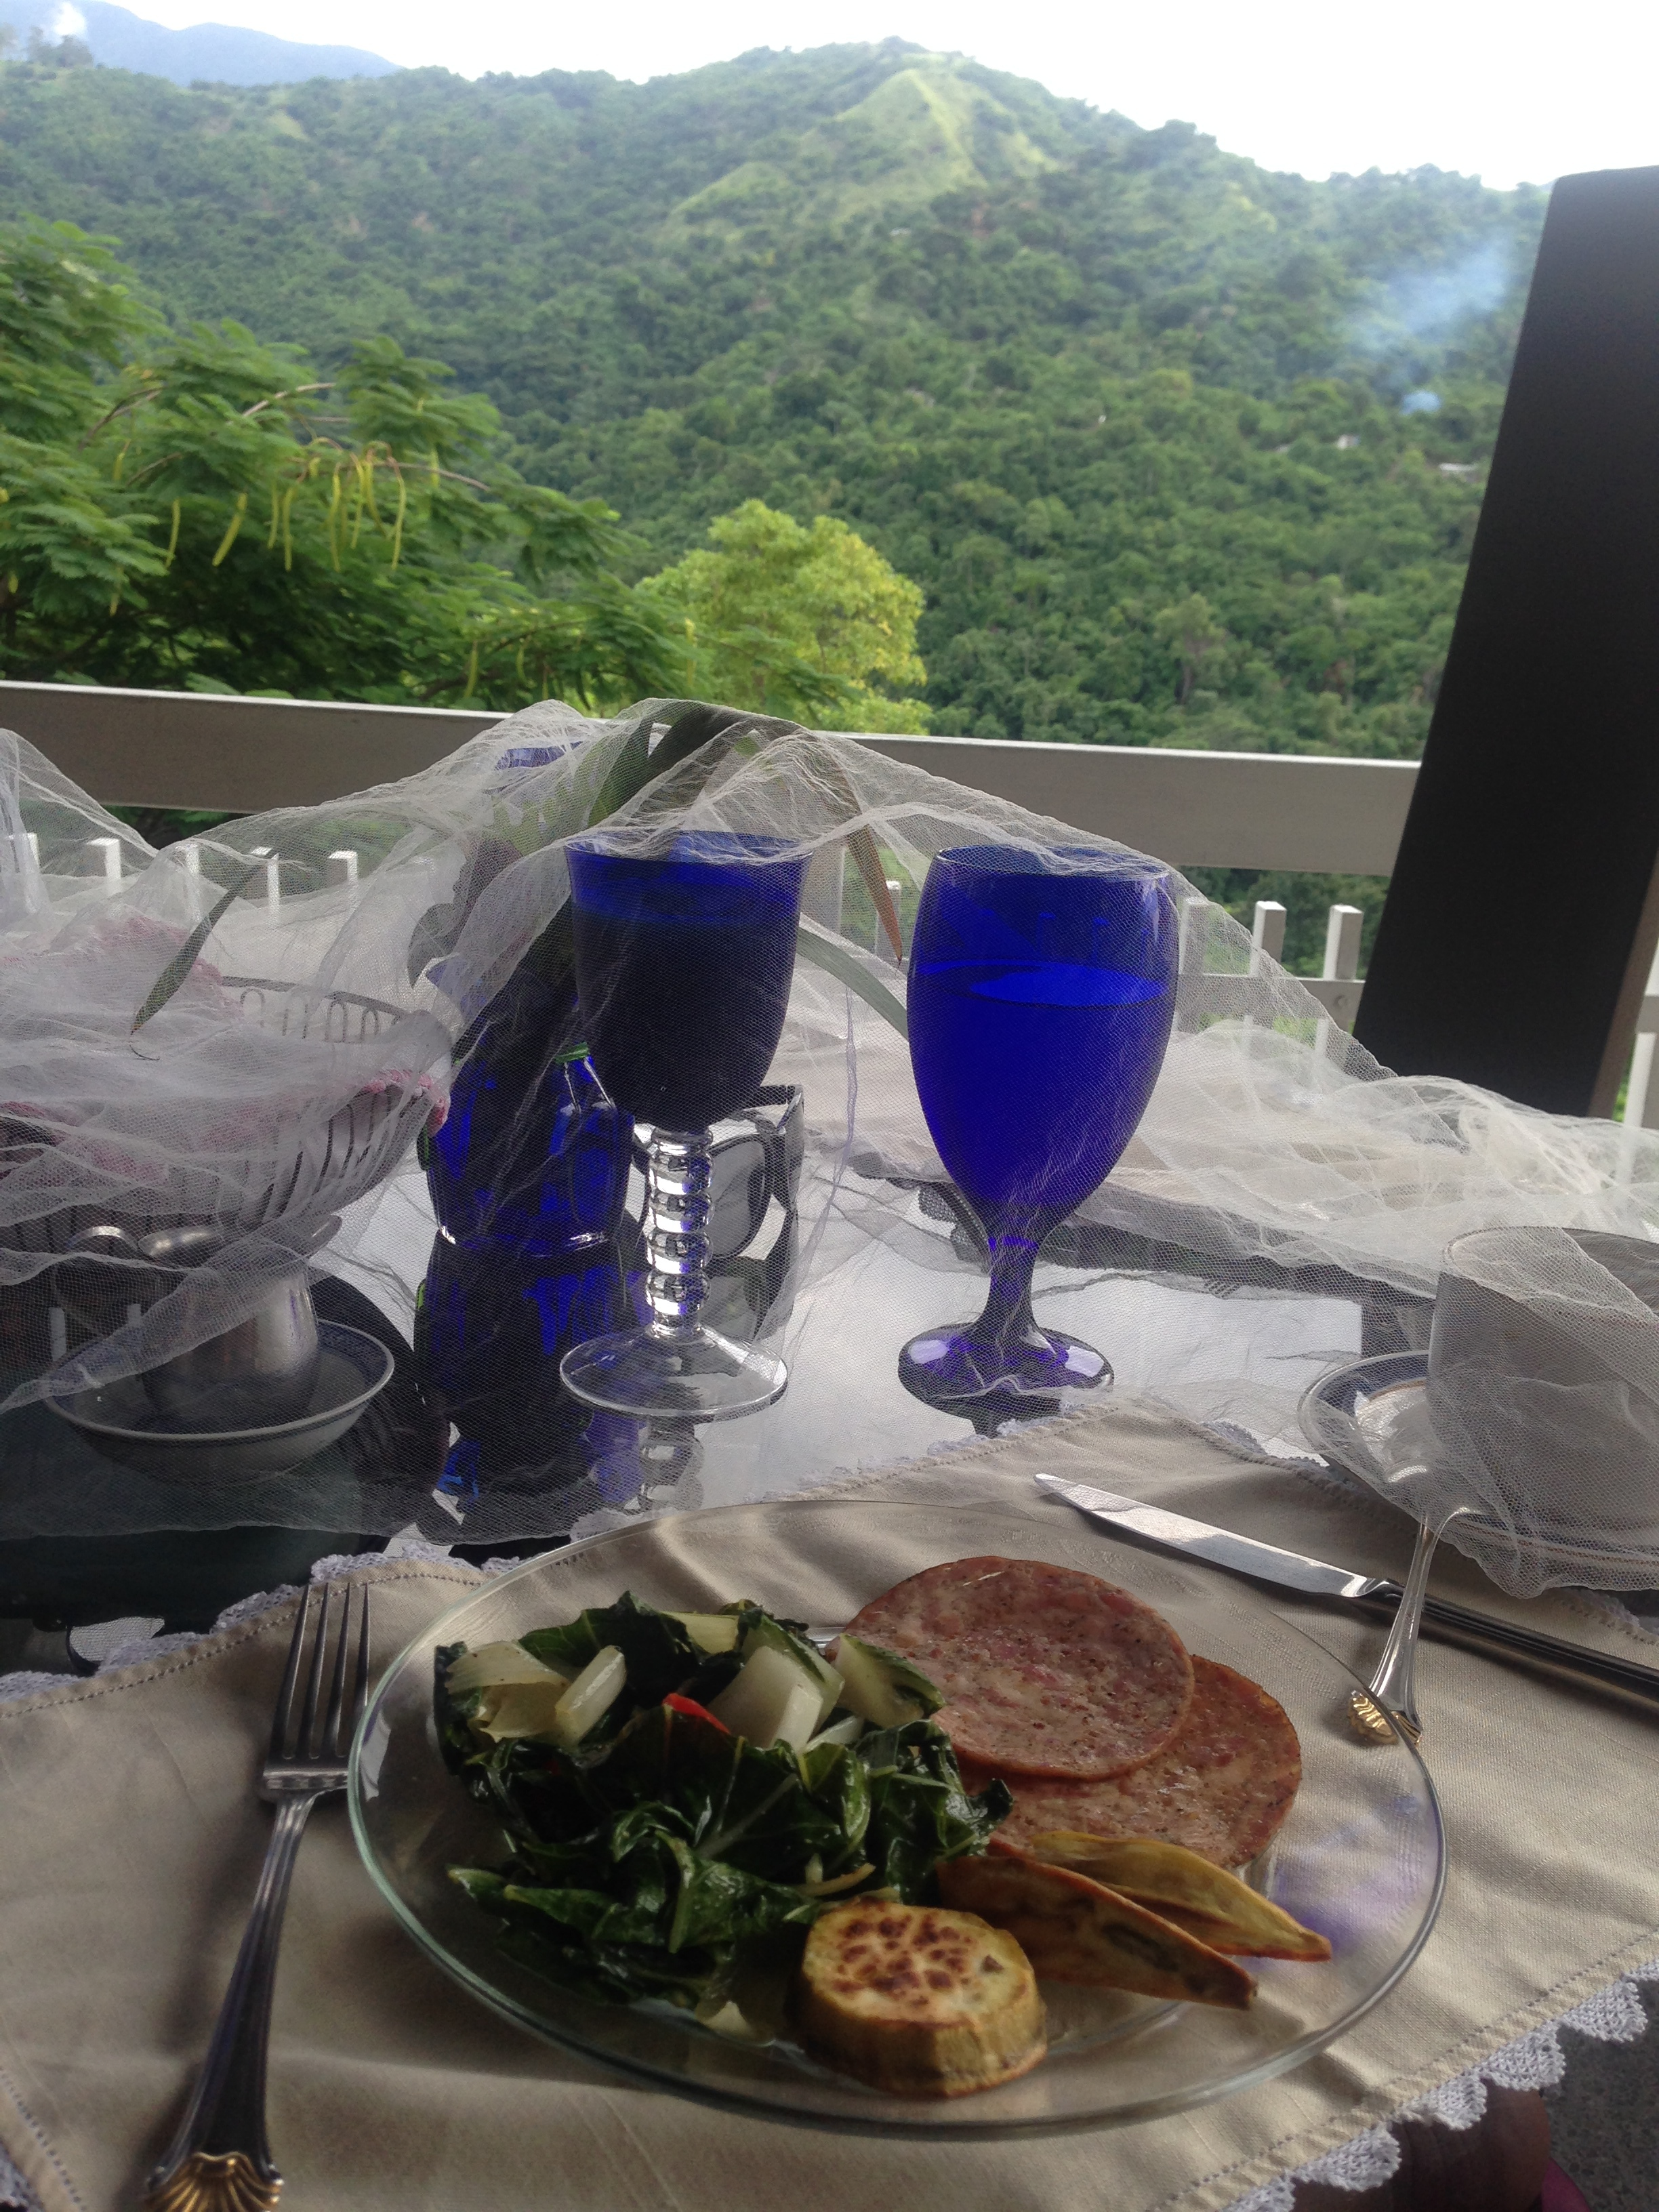 Greens, sausage and plantains cooked for us at the B&B Neitas nest. Kingston, Jamaica